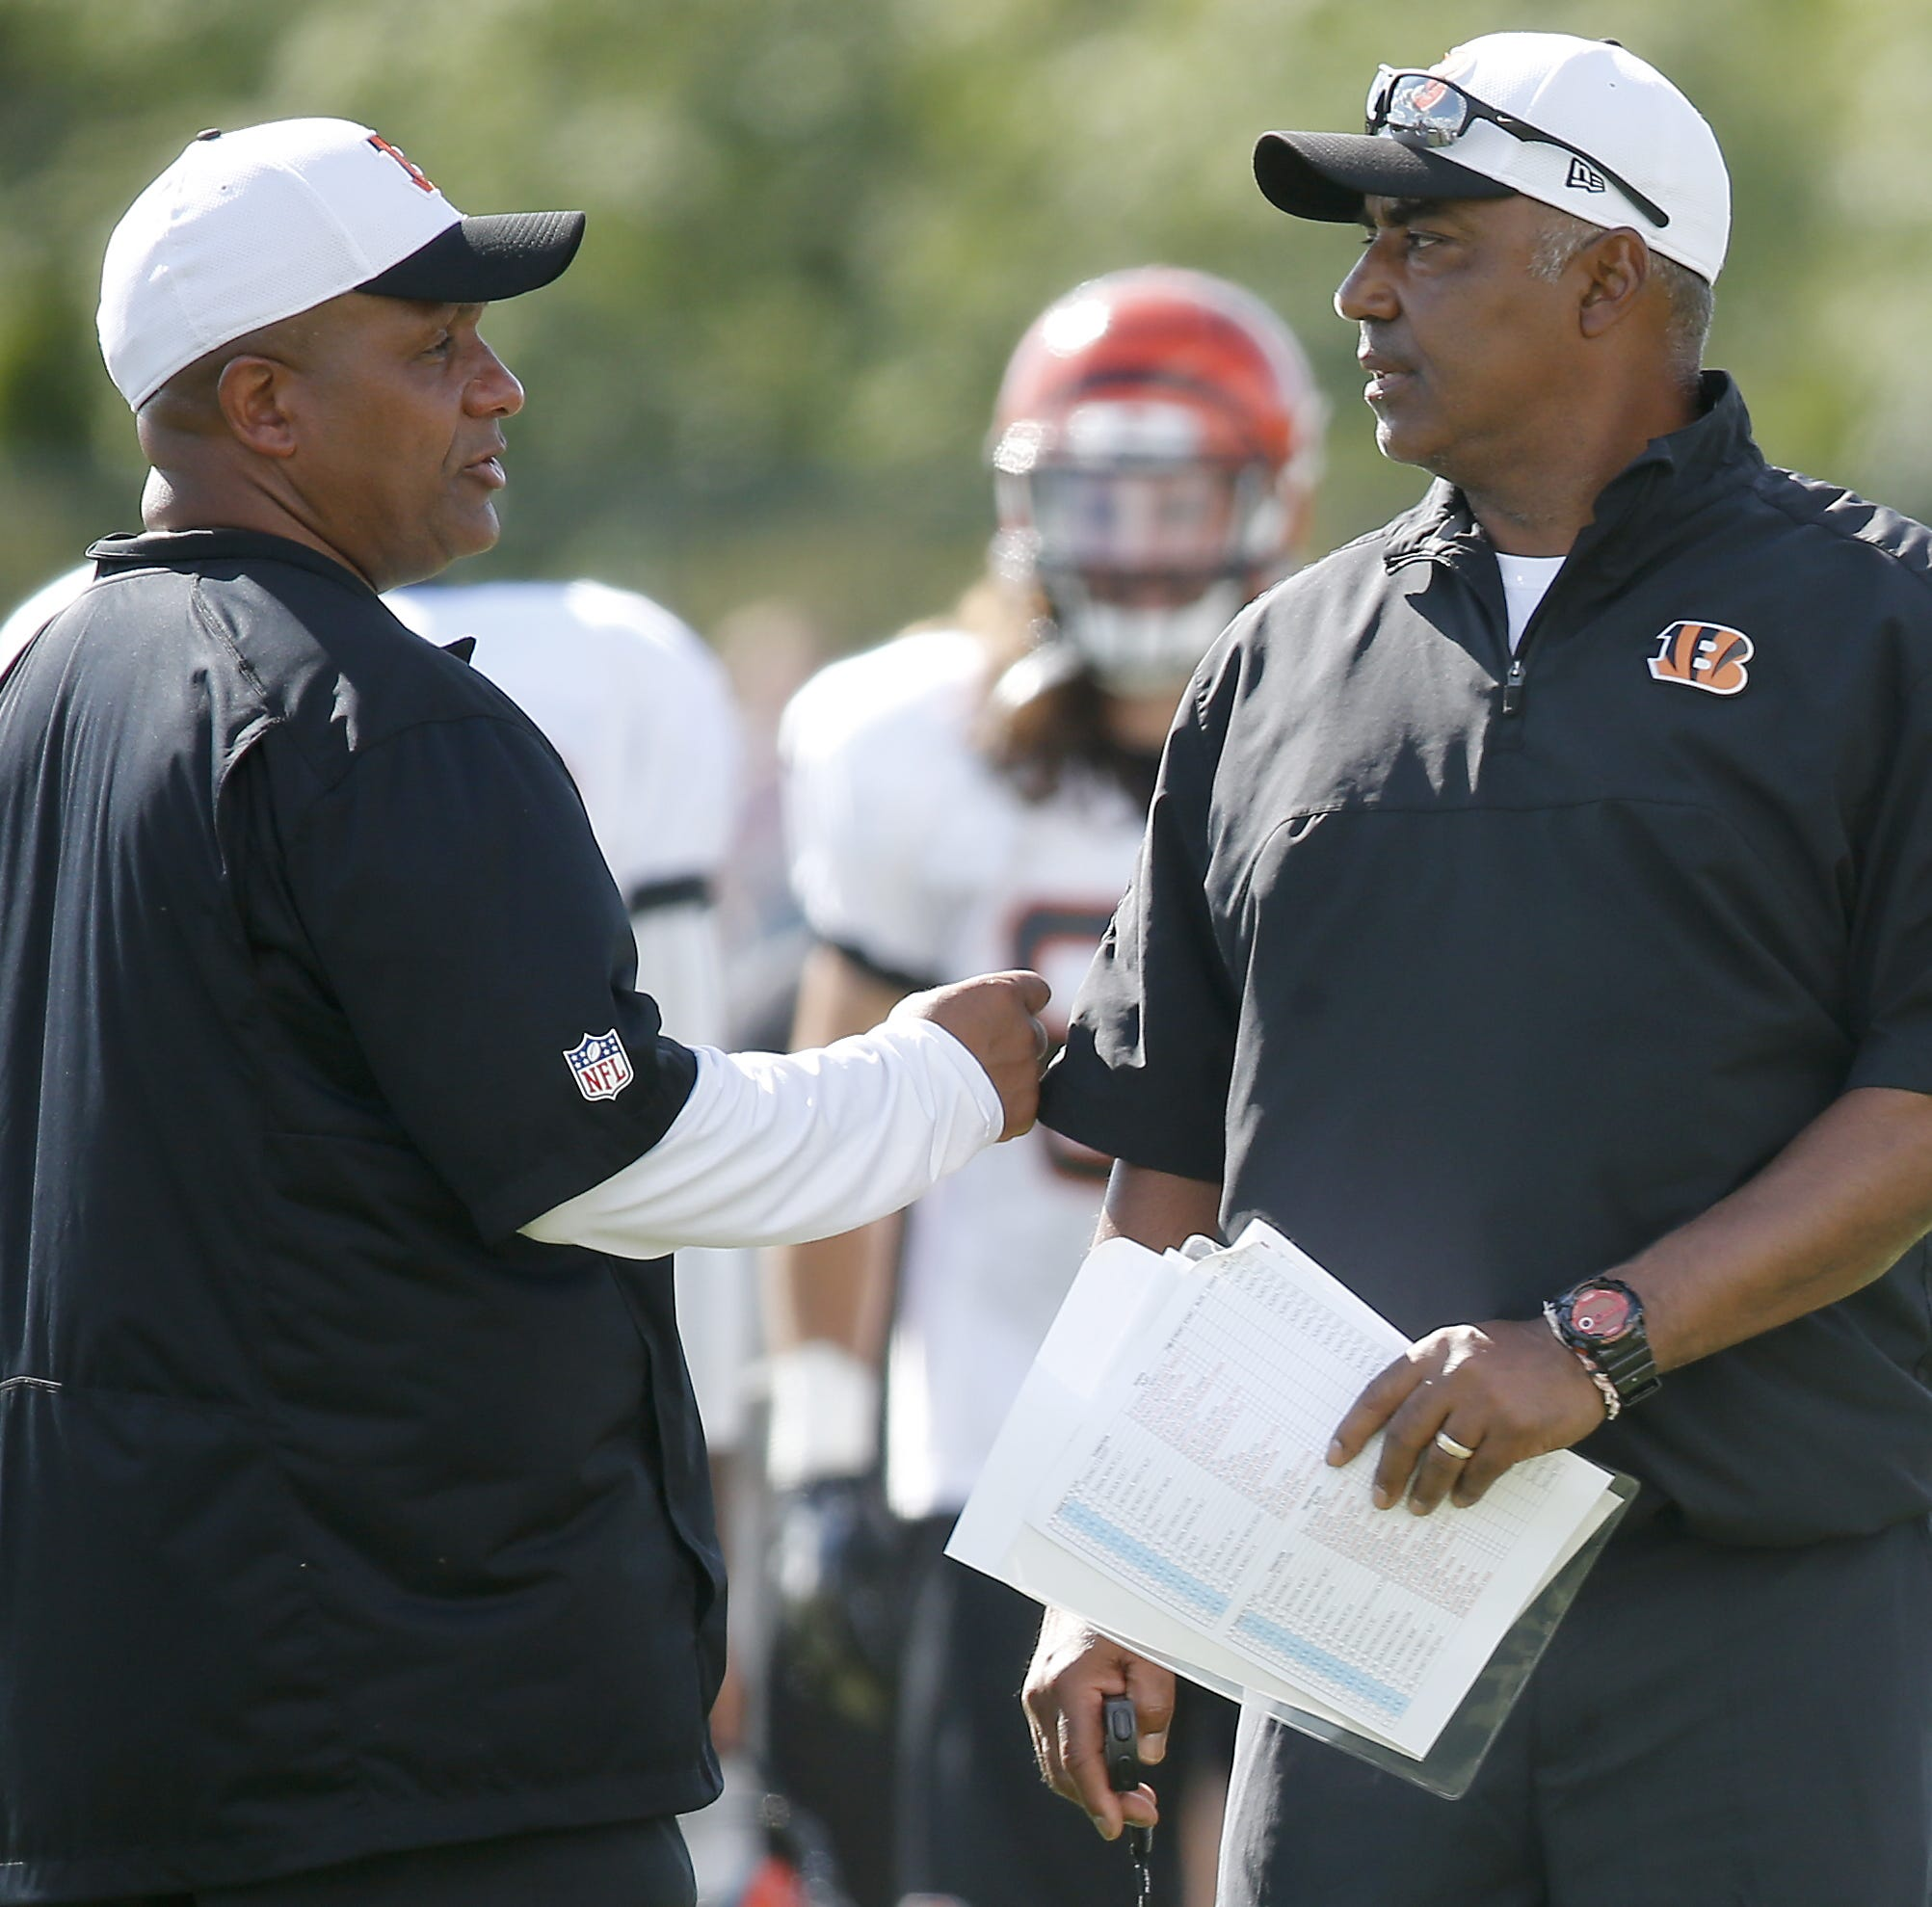 2018 Cincinnati Bengals: Hue Jackson named Special Assistant to Marvin Lewis